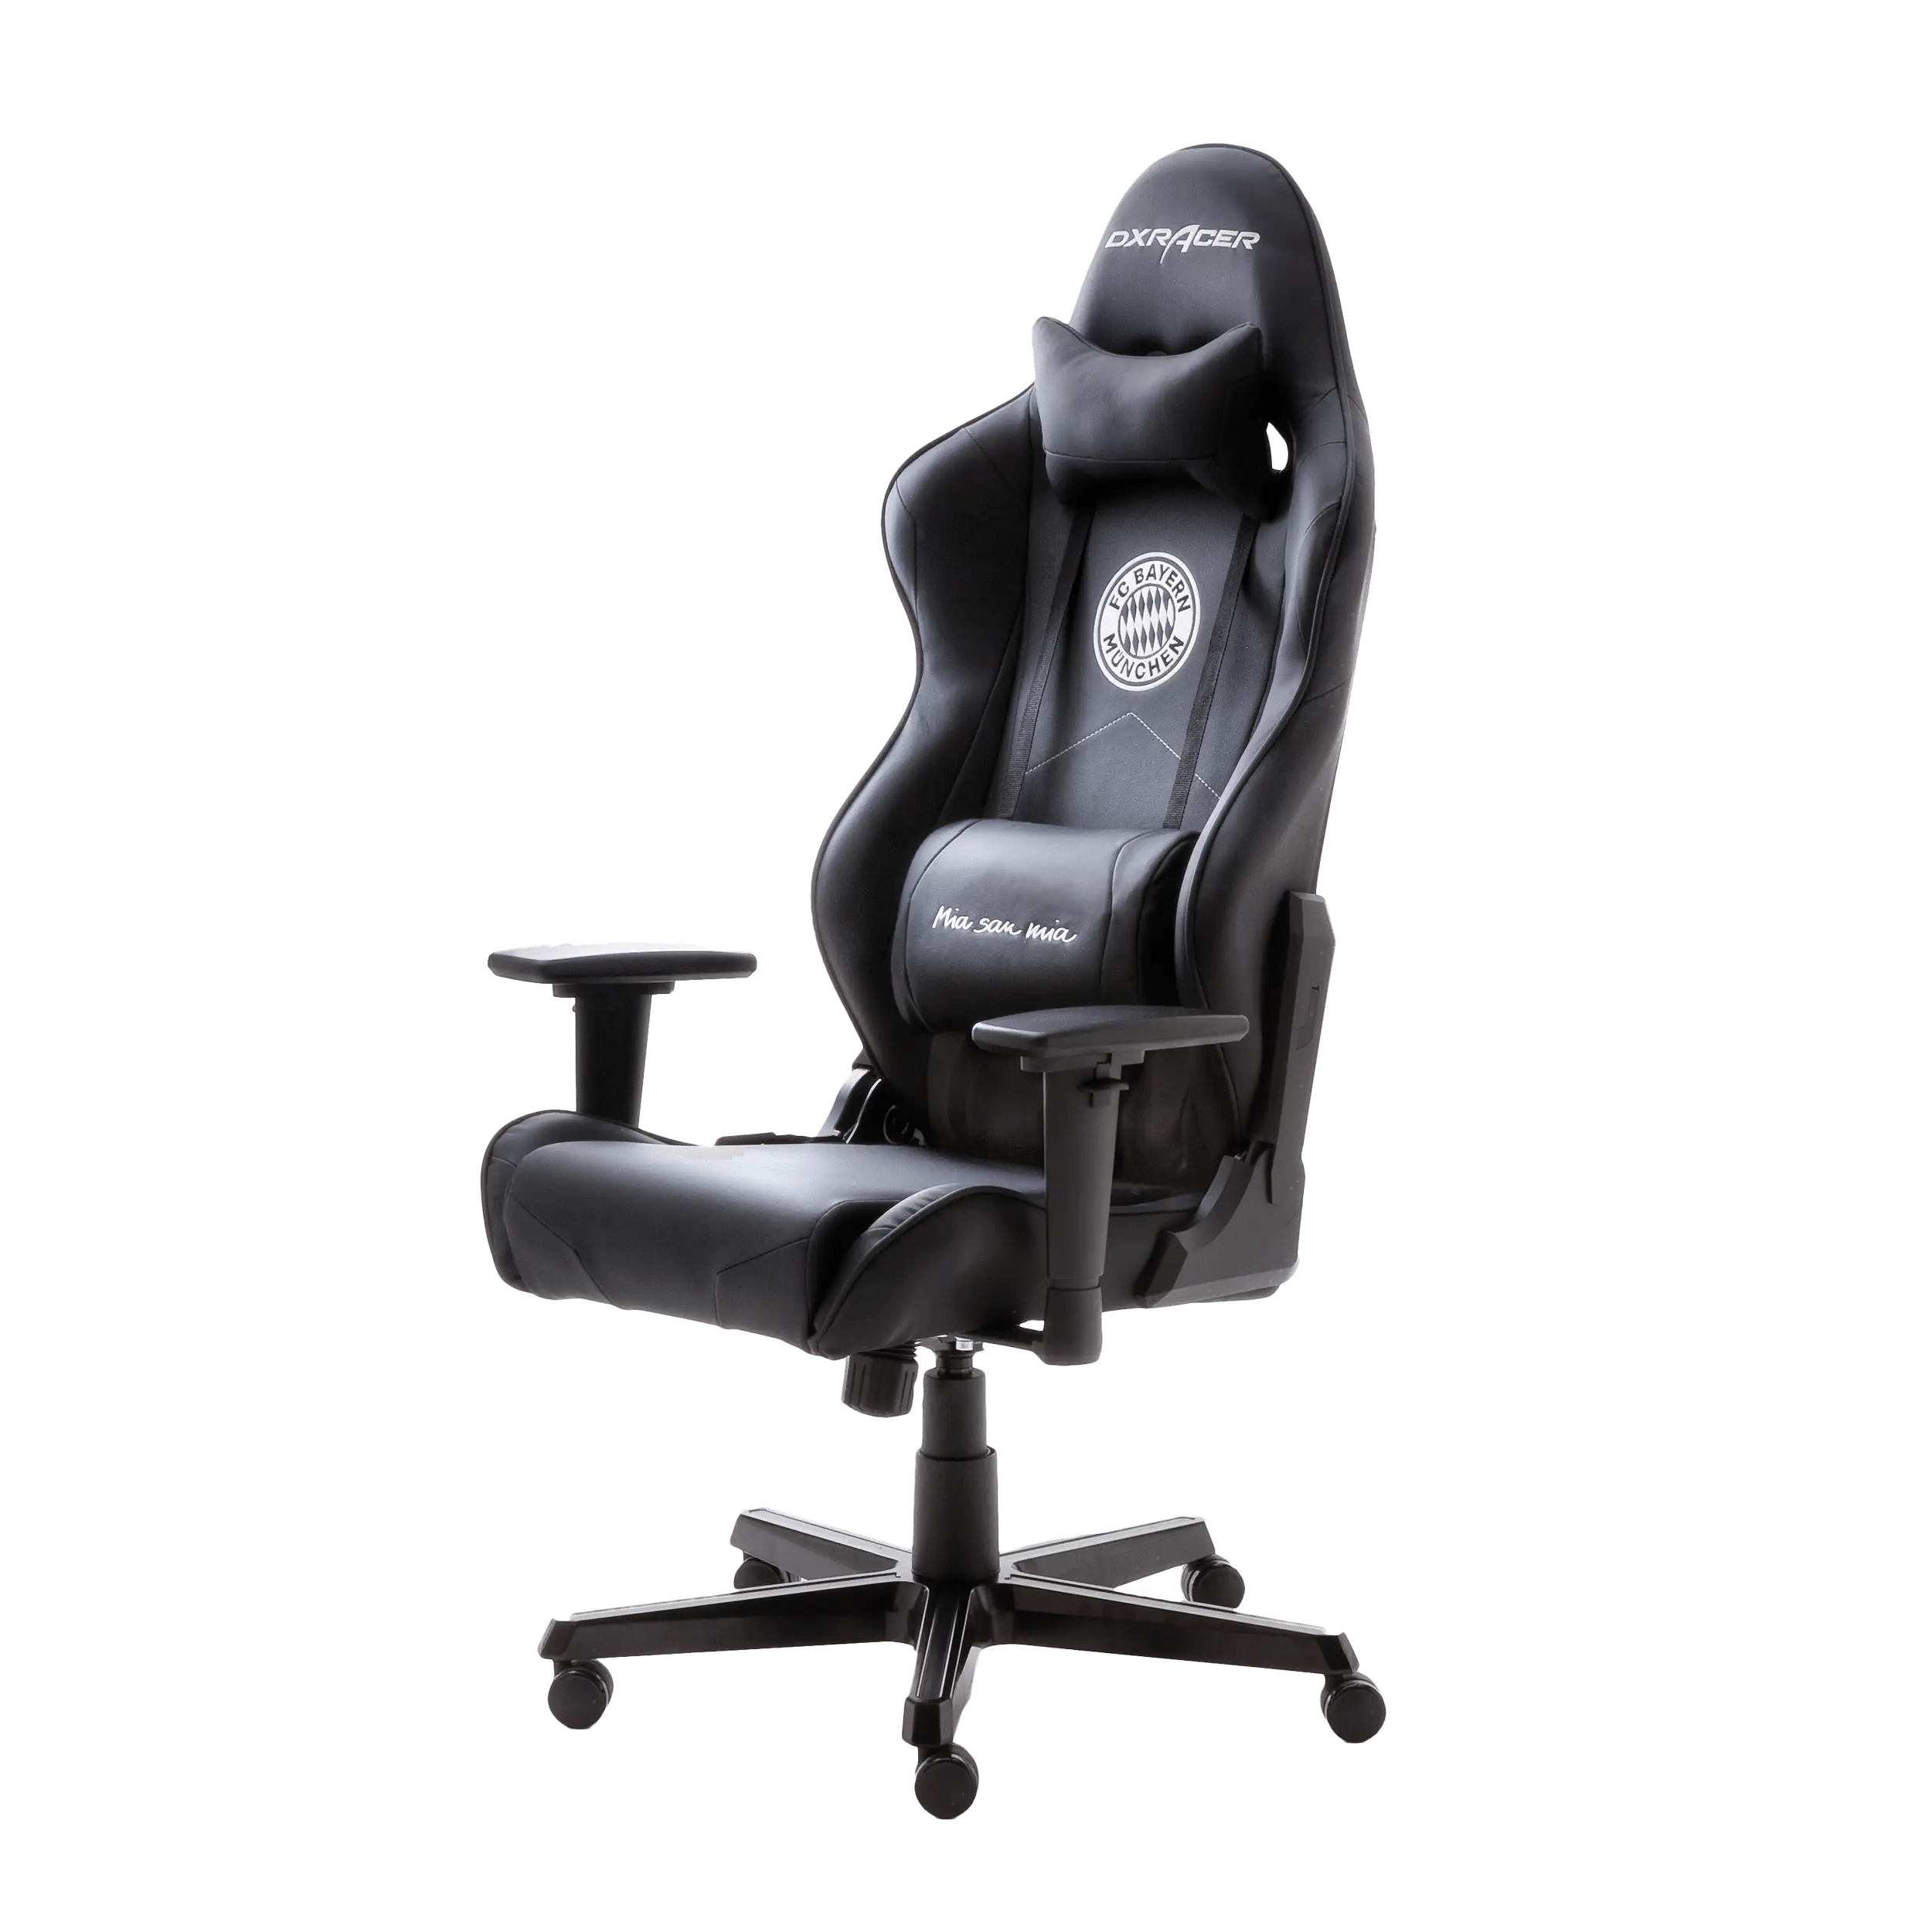 Stuhl Gamer Fc Bayern Gaming Chair Dxracer